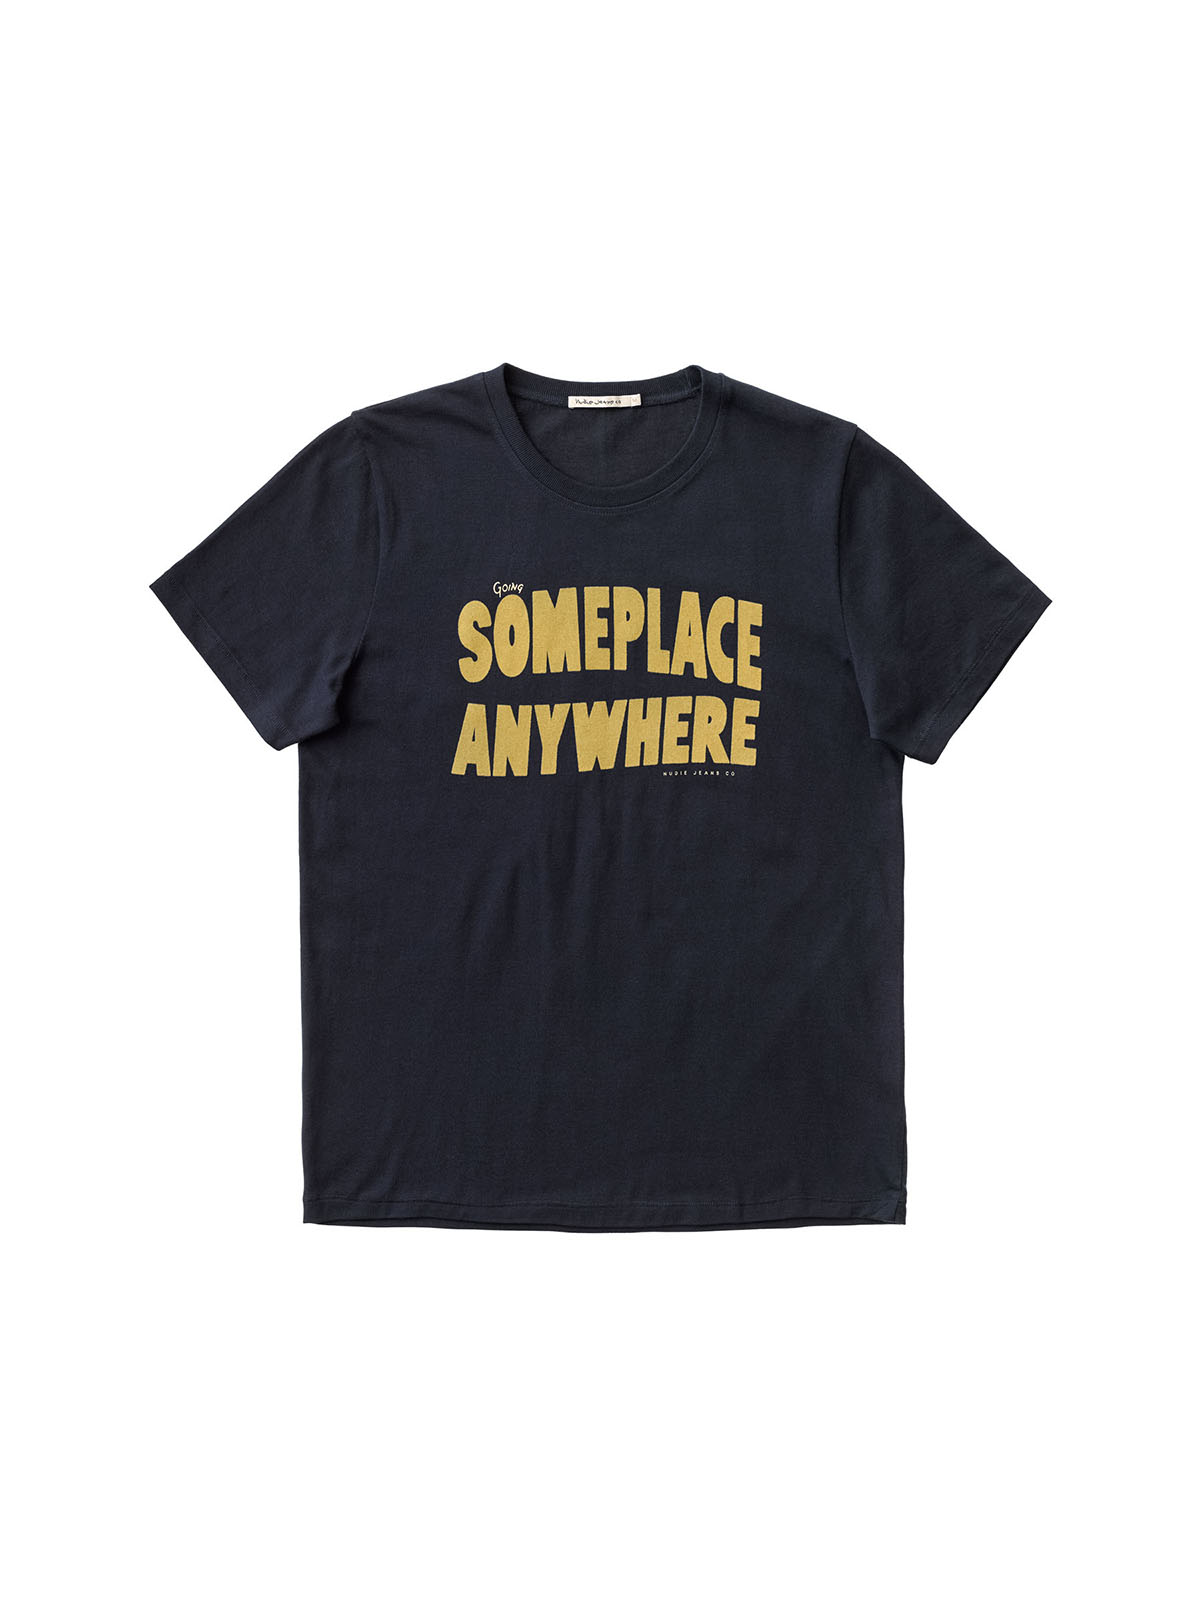 Roy Someplace Anywhere